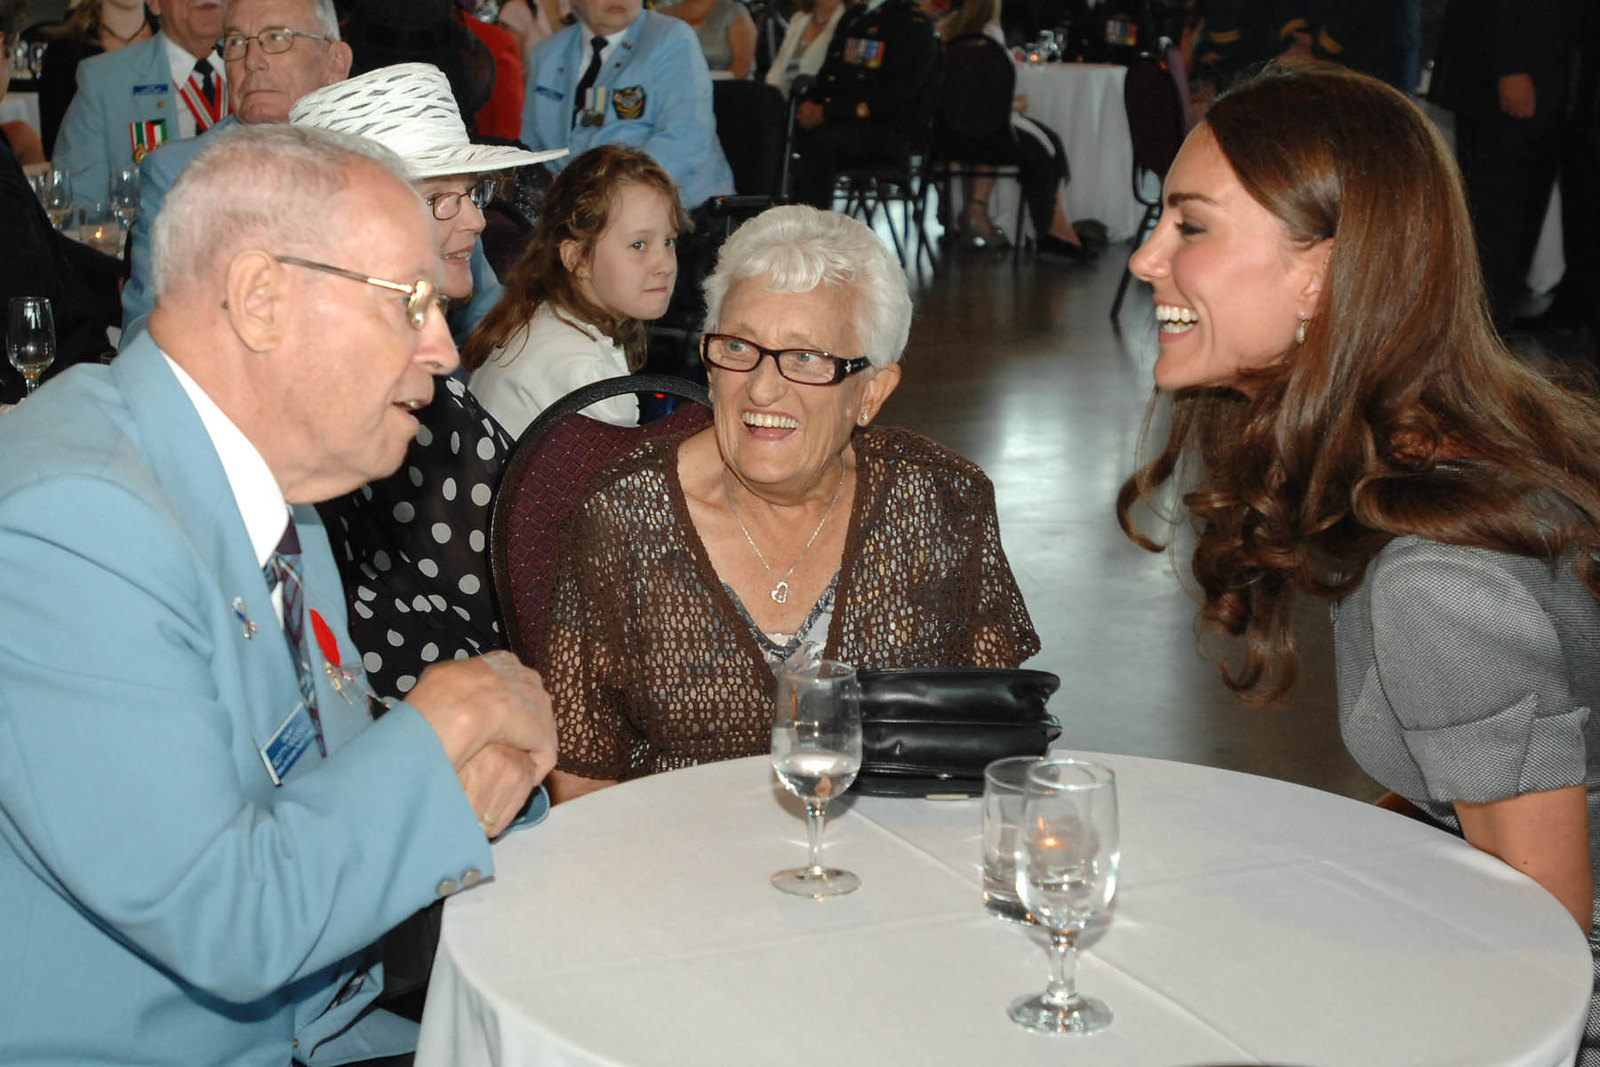 the Duchess of cambridge at war museum